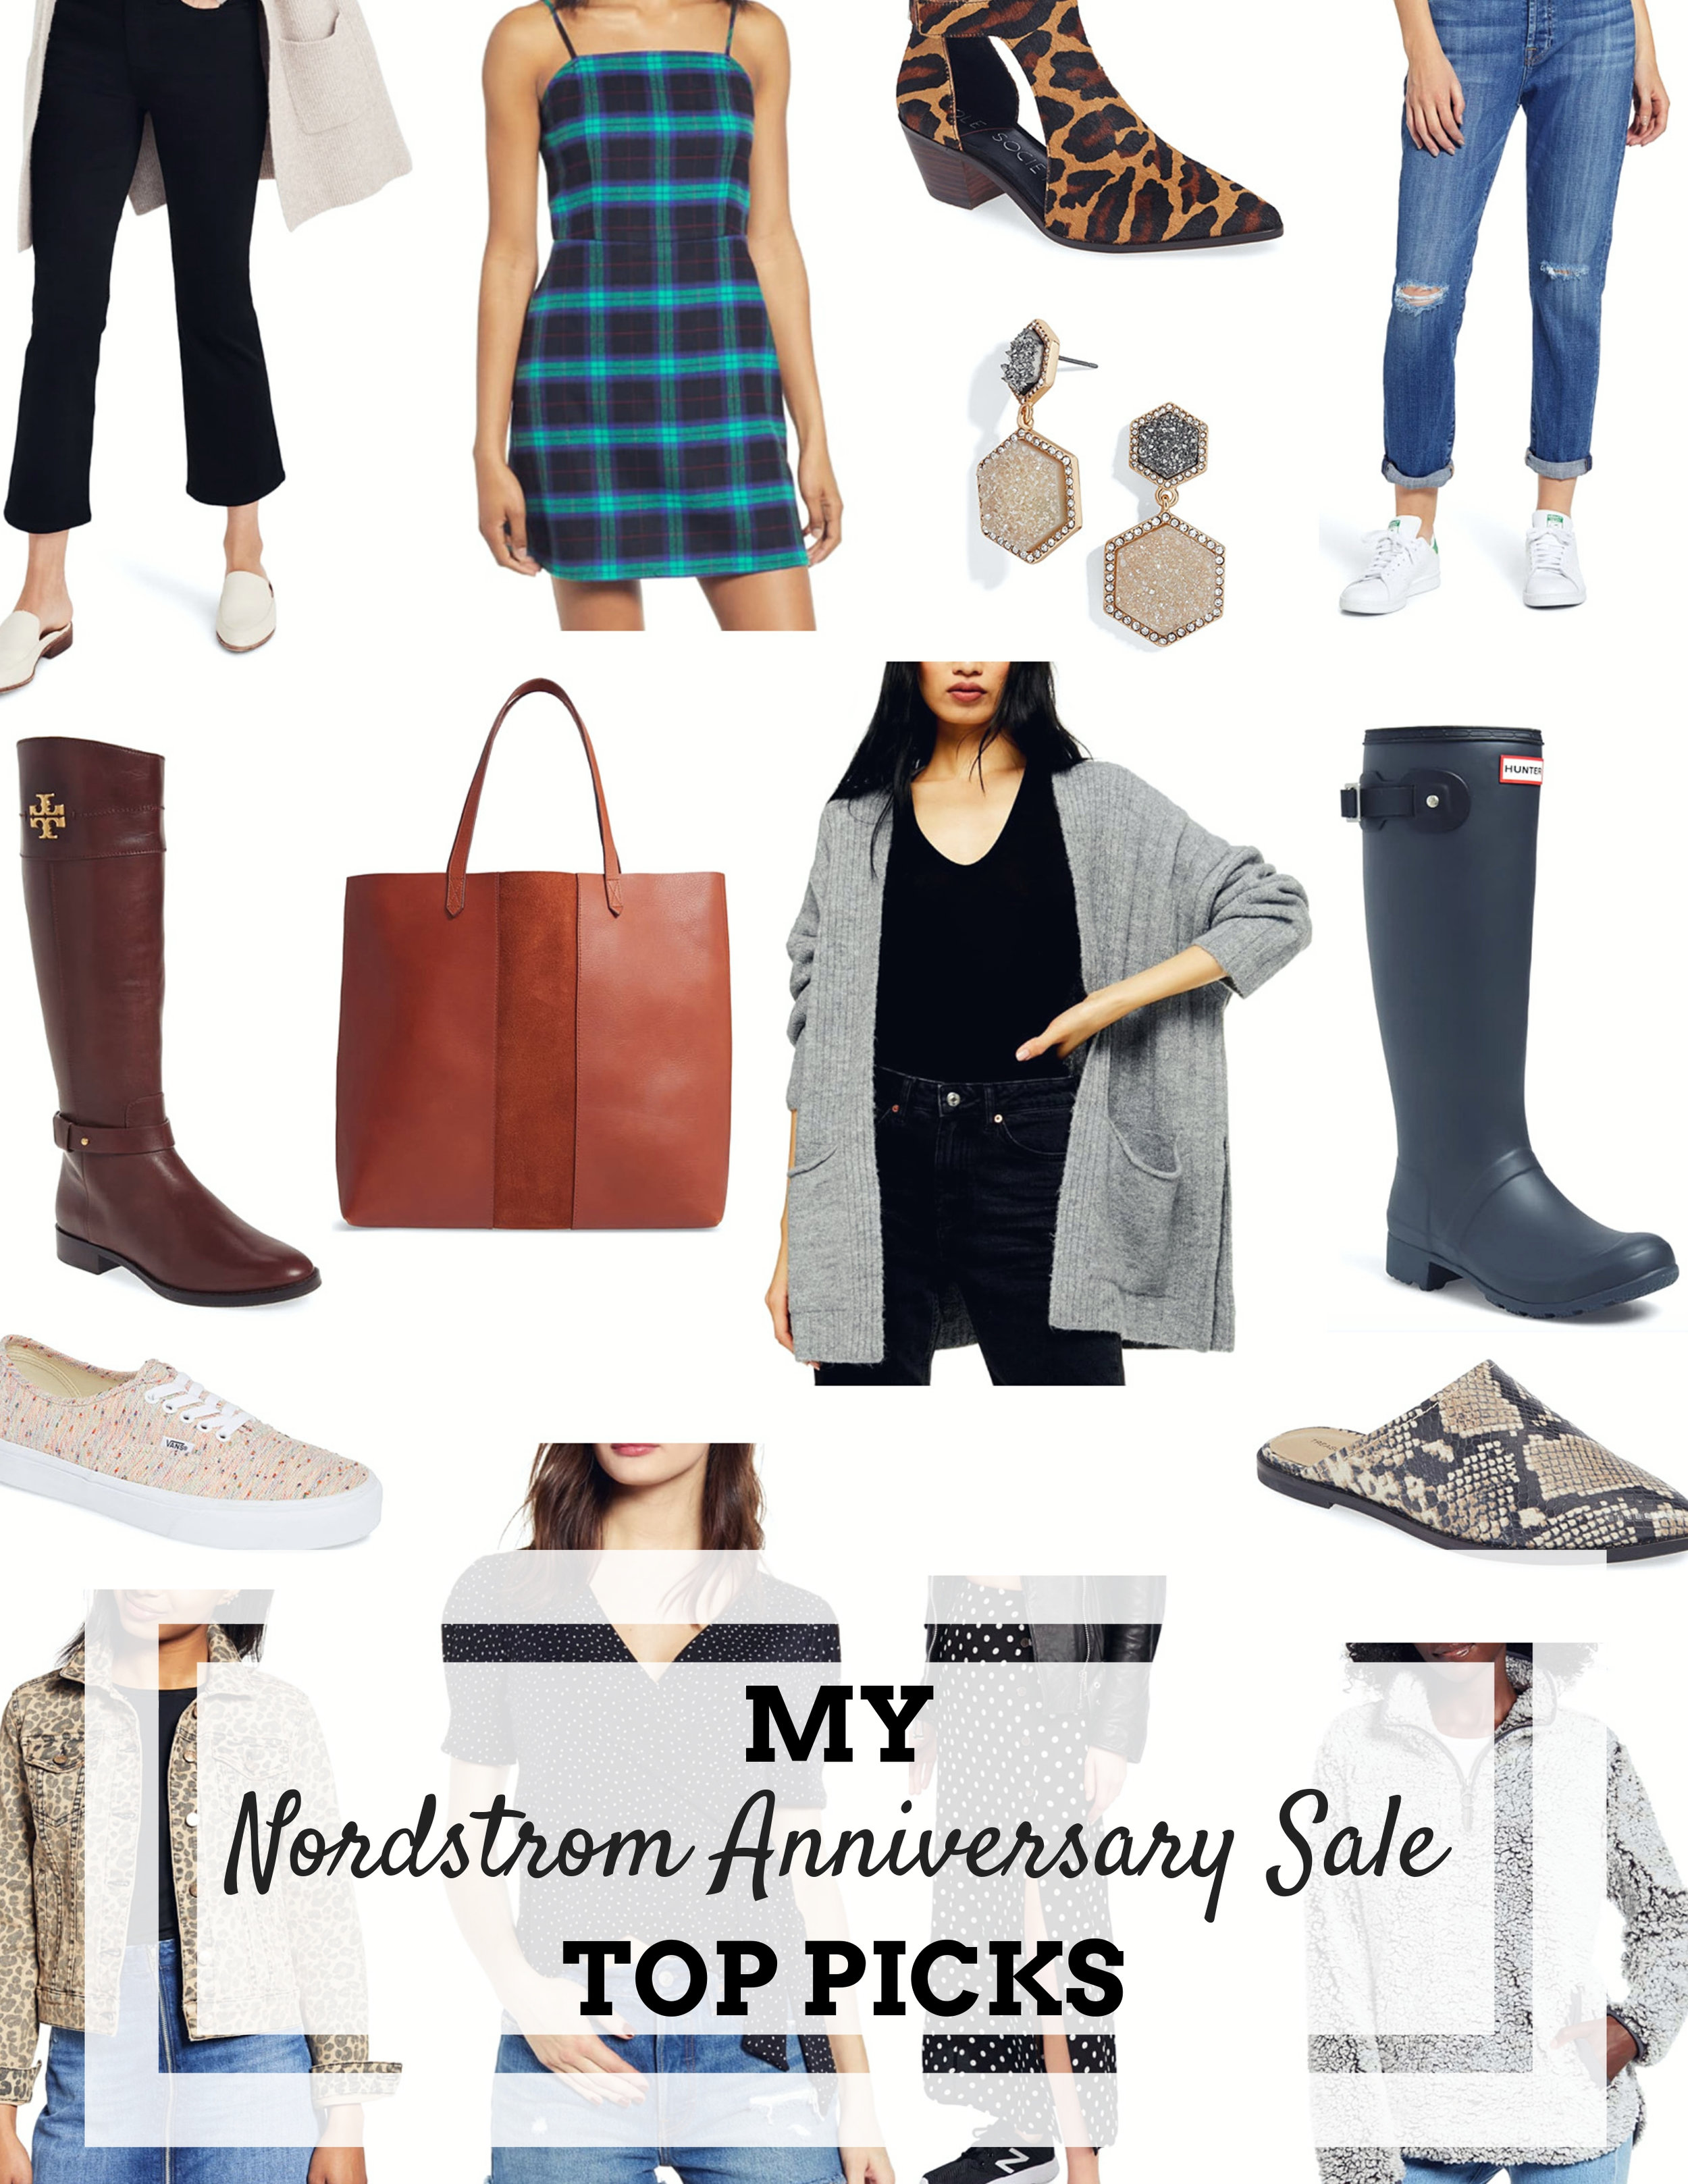 nordstrom anniversary top picks.jpg